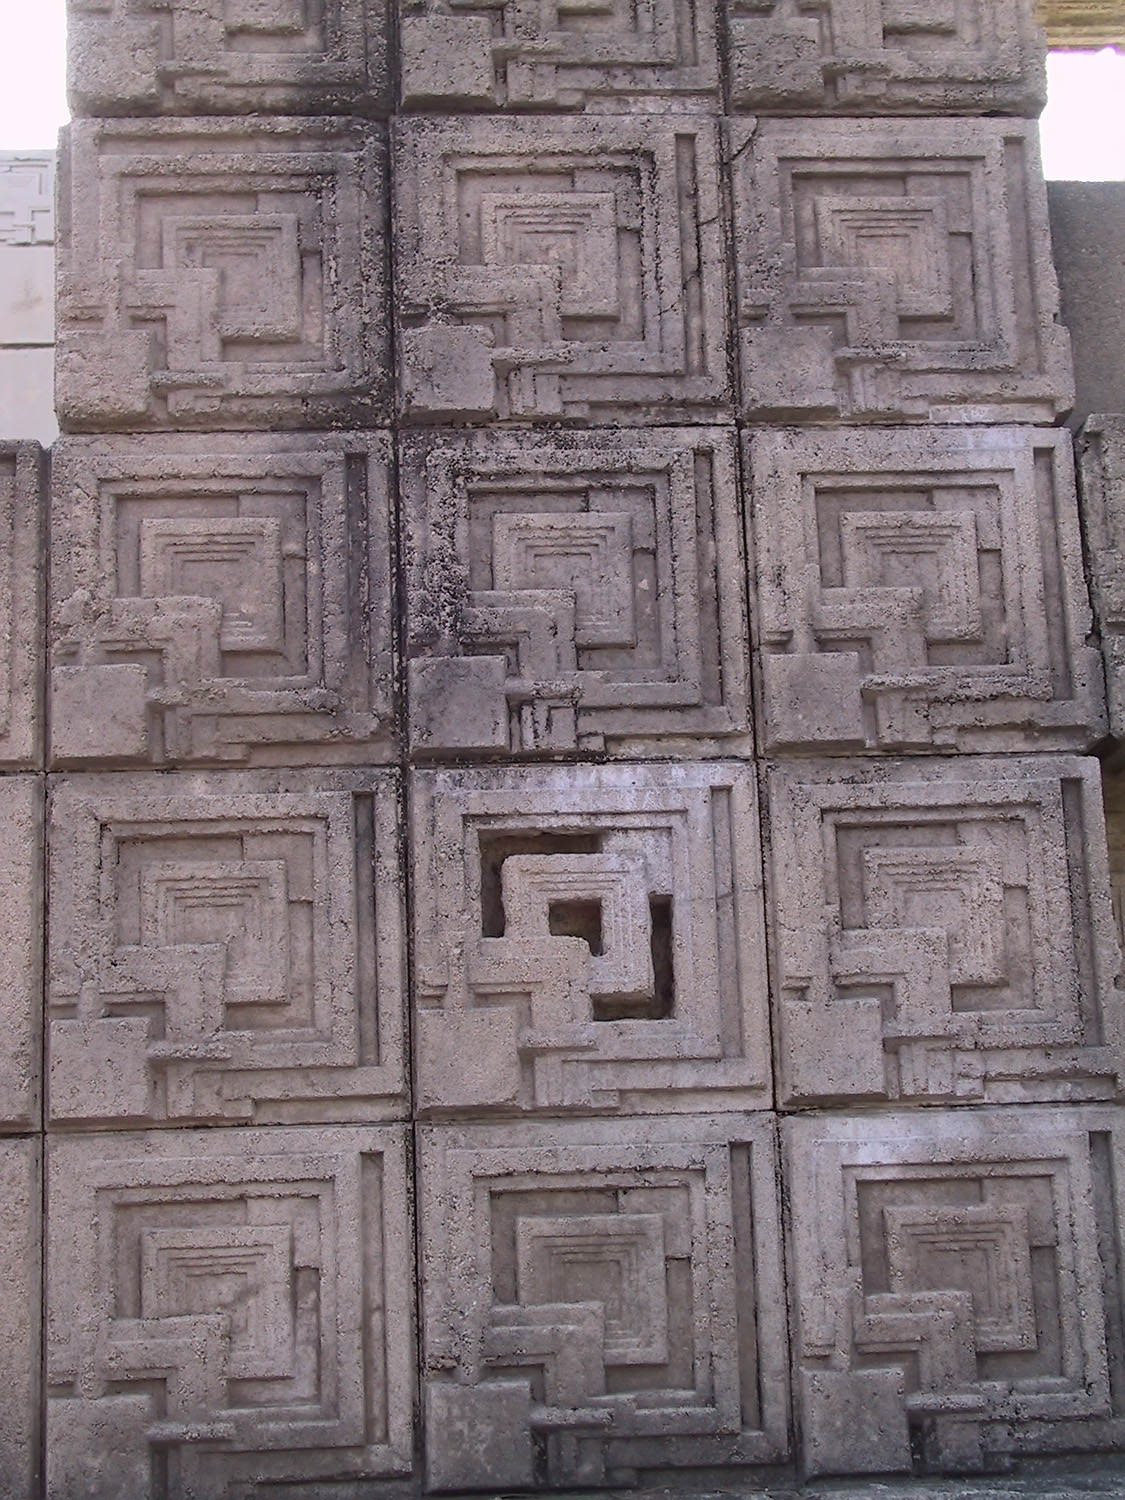 This block pattern is unique to the Ennis house.